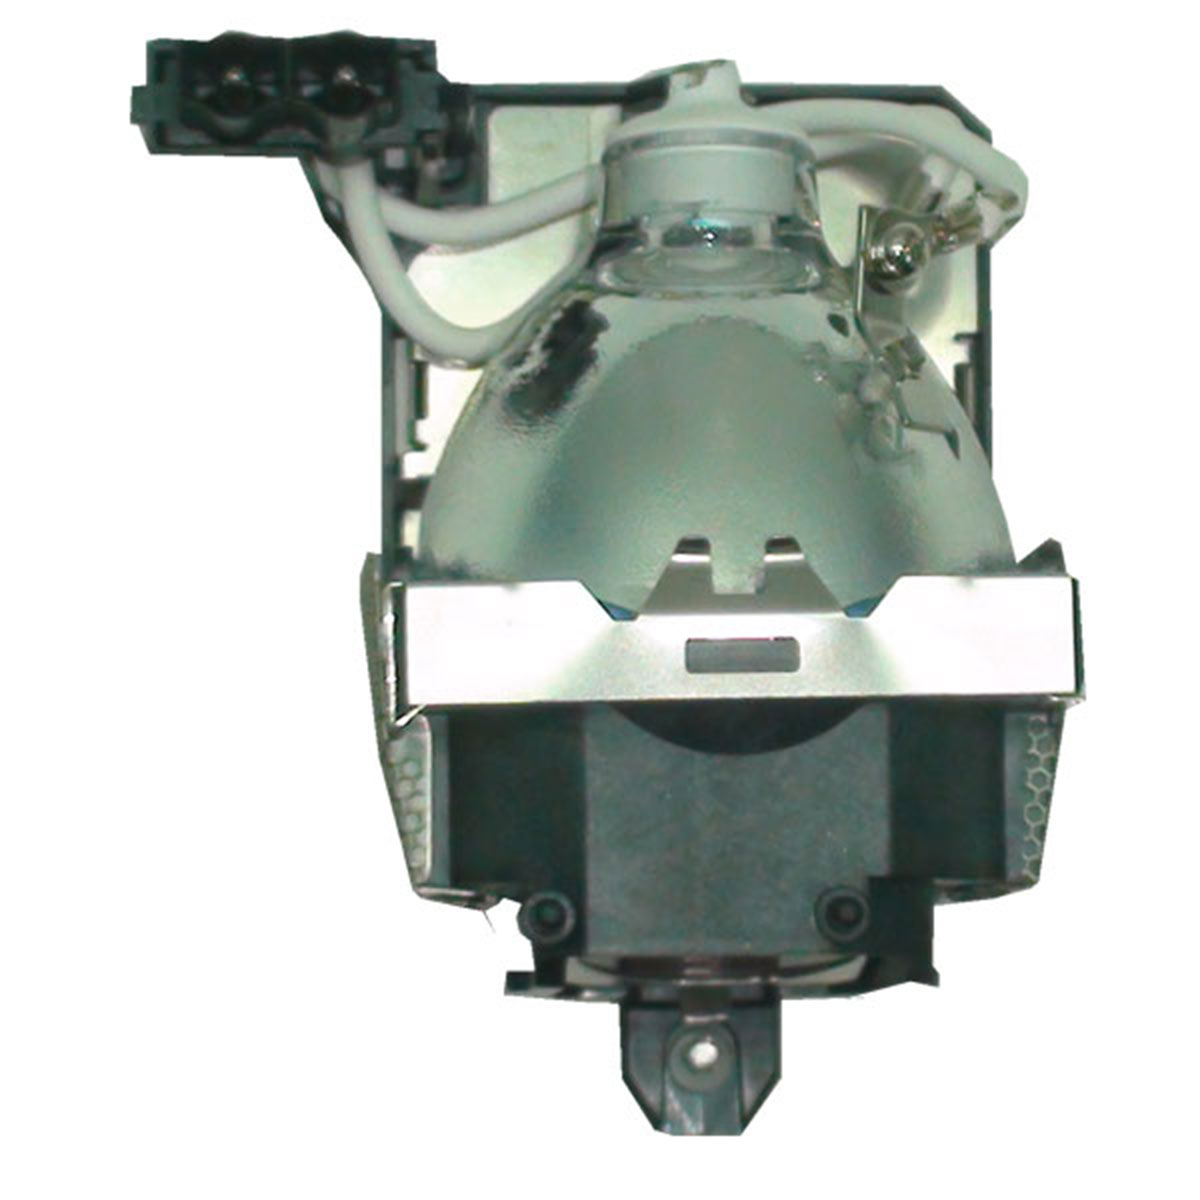 Original Osram Projector Lamp Replacement with Housing for BenQ CS.59J0Y.1B1 - image 3 of 5